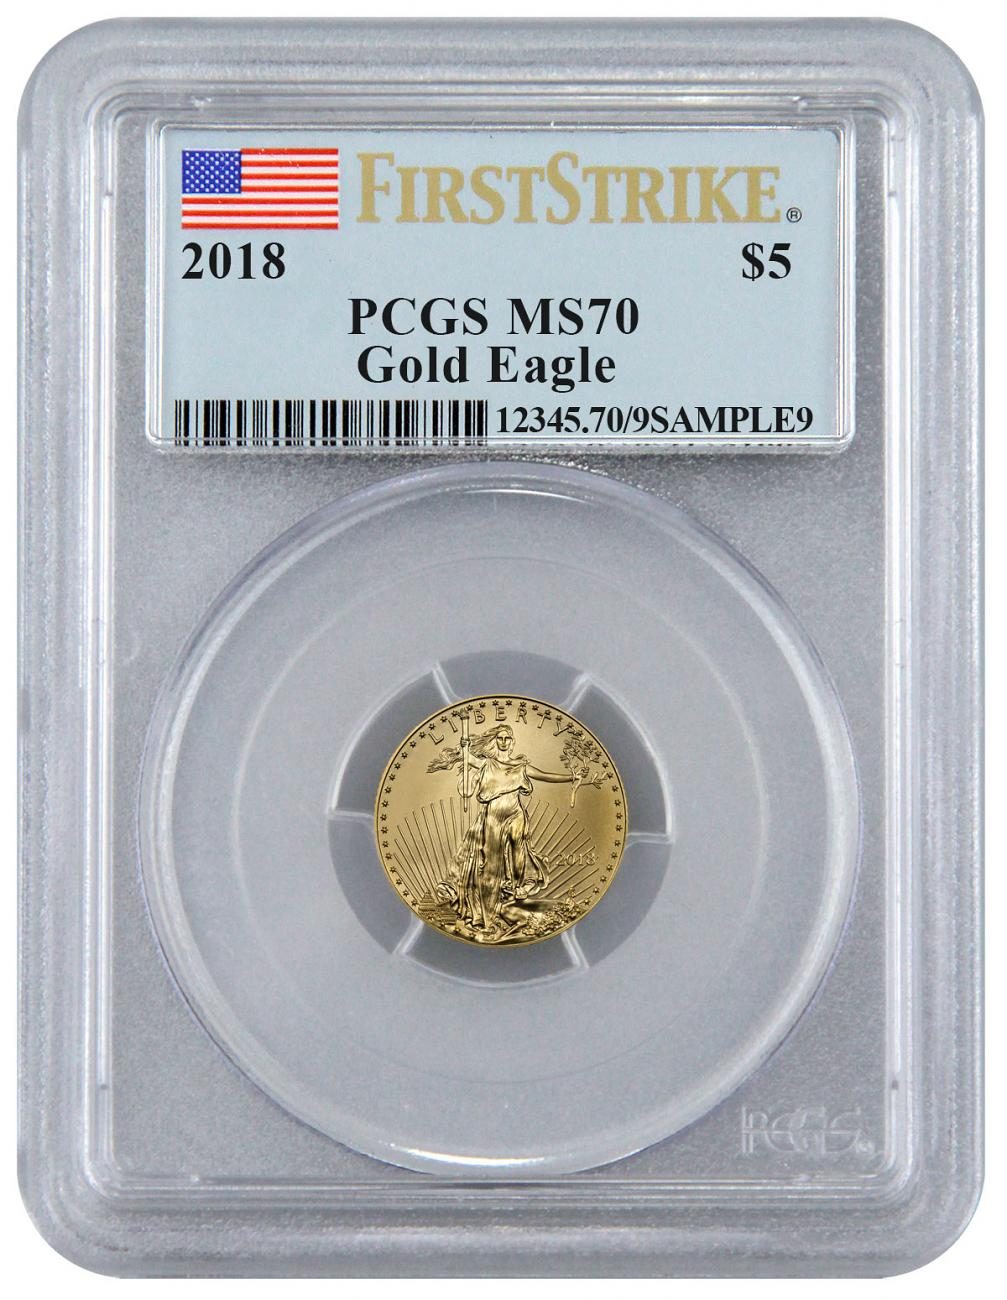 2018 1/10 oz Gold American Eagle $5 PCGS MS70 FS Flag Label